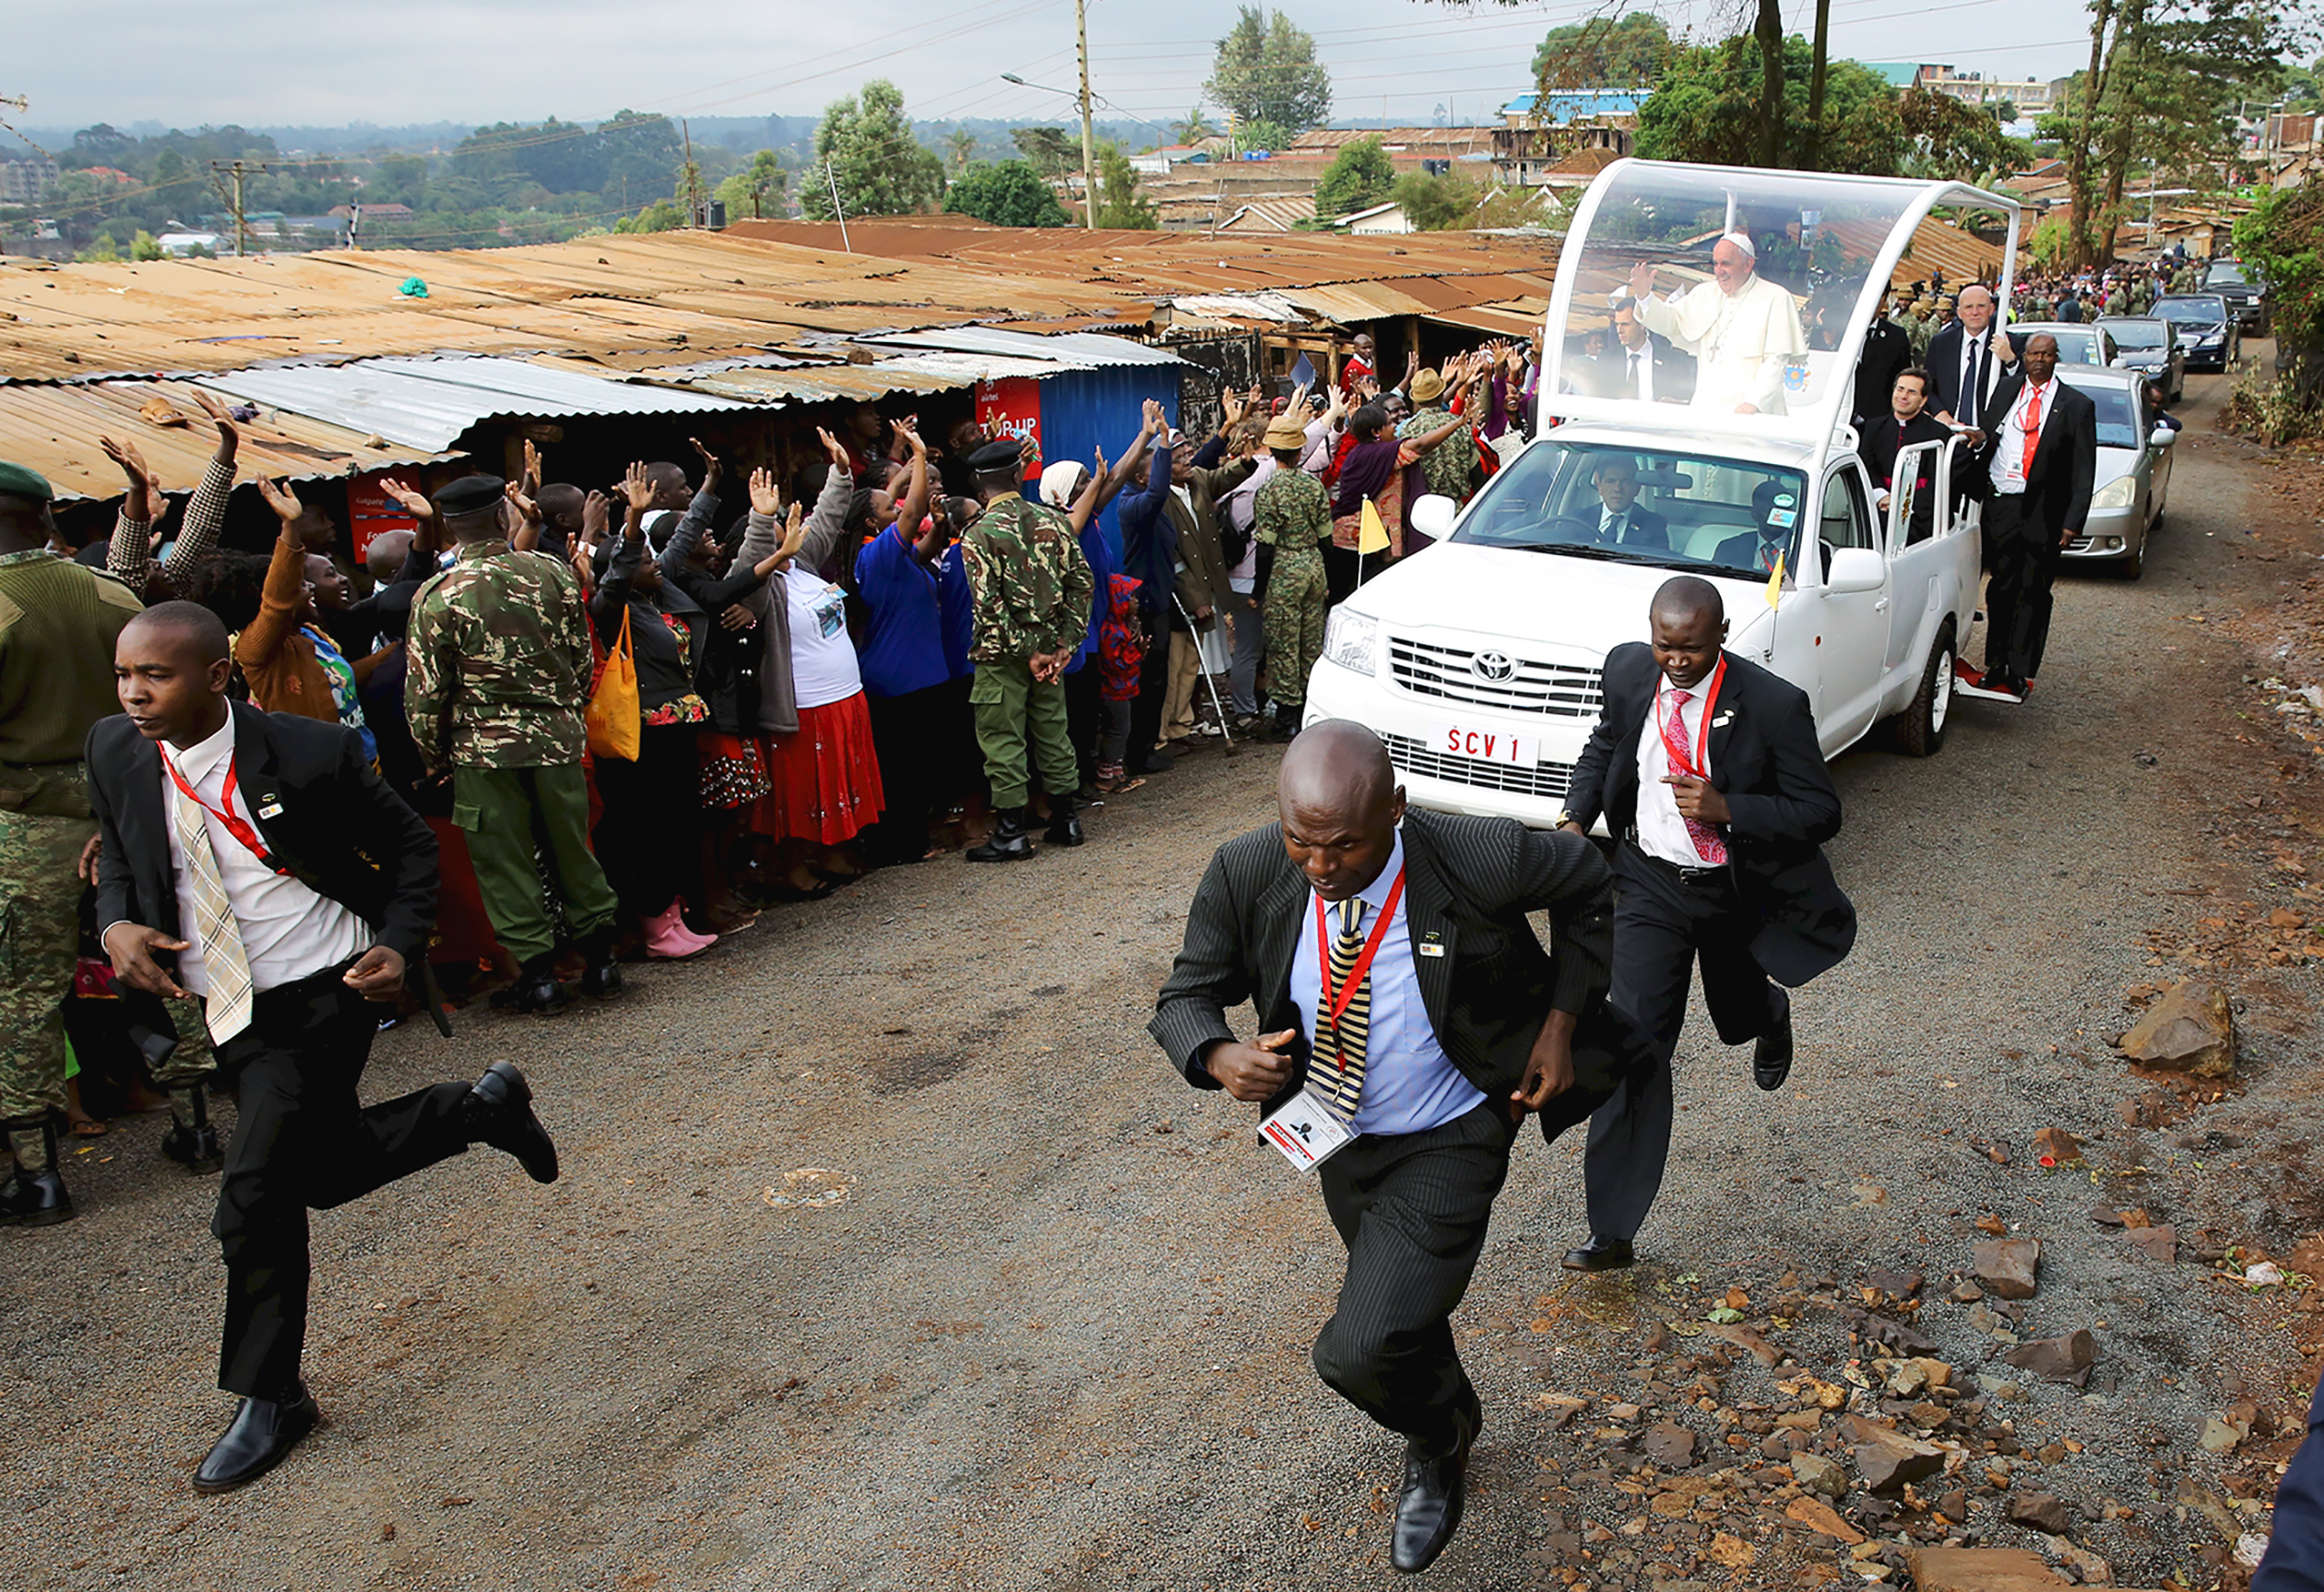 Pope Francis waves as he arrives at the Kangemi slums on the outskirts of Kenya's capital Nairobi